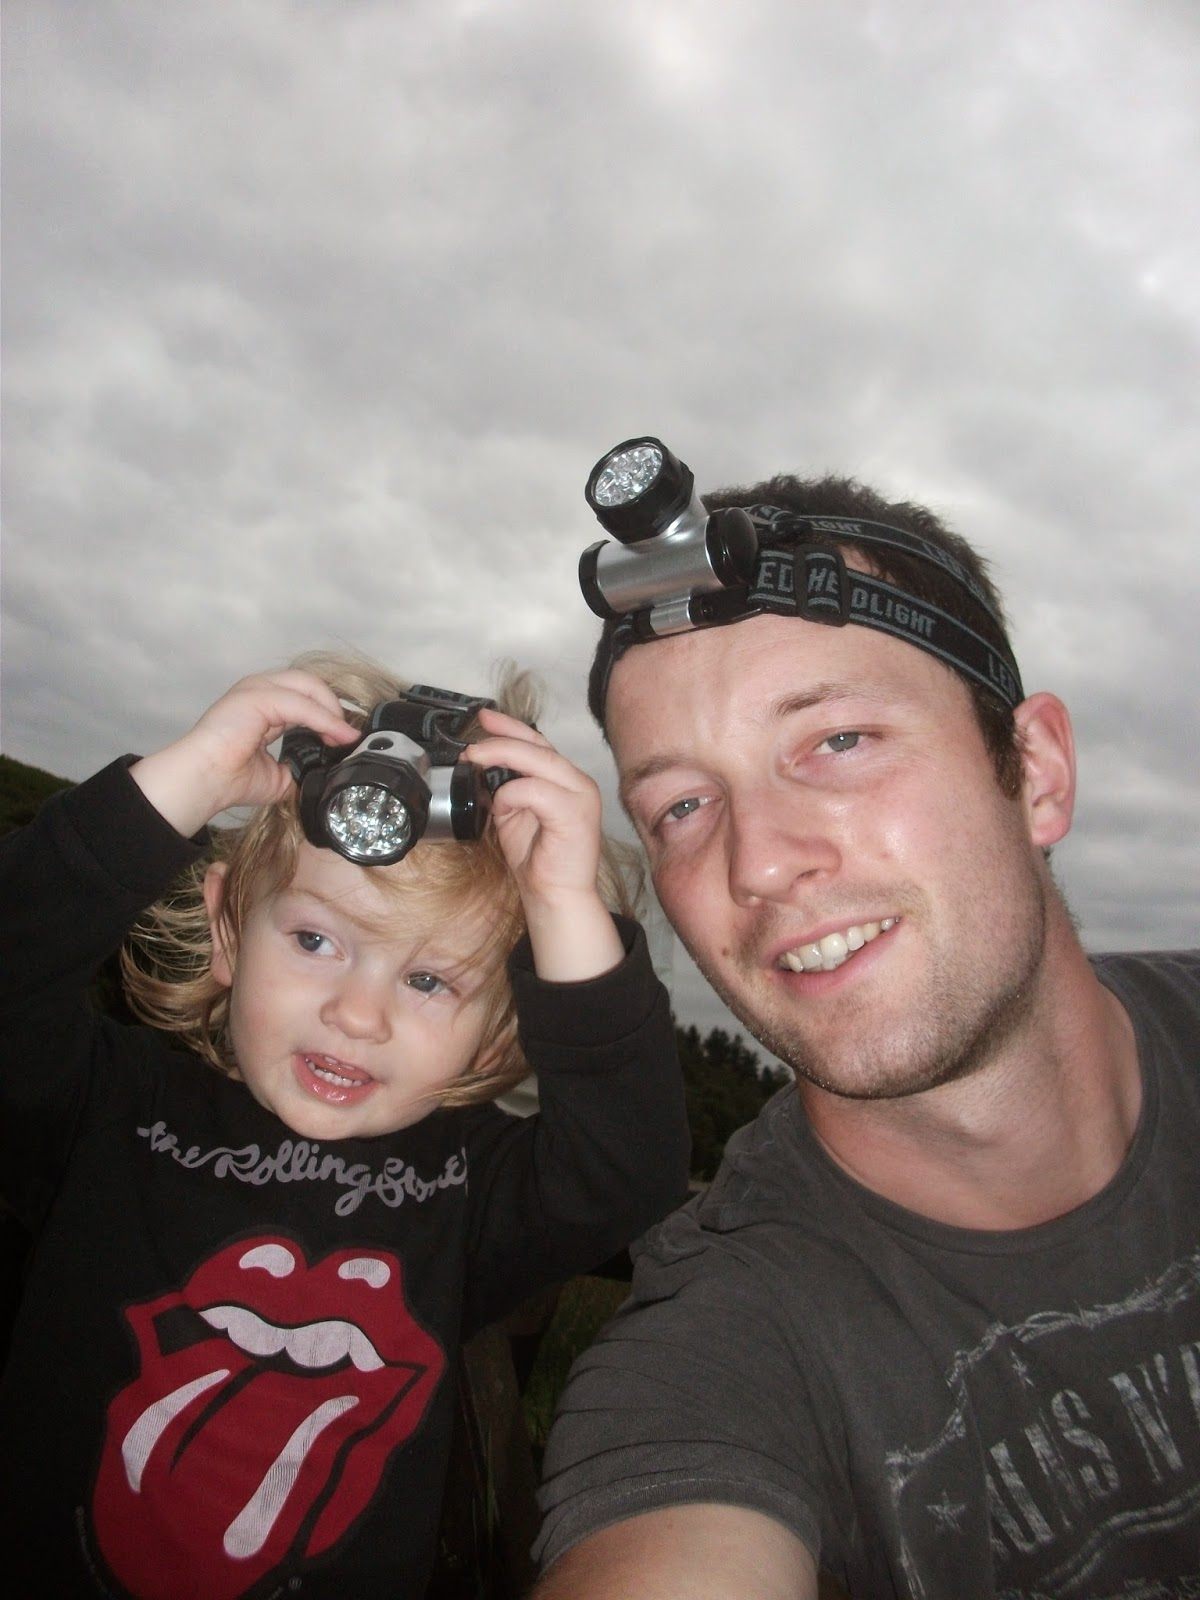 Eva and Dad, headtorch selfie #2